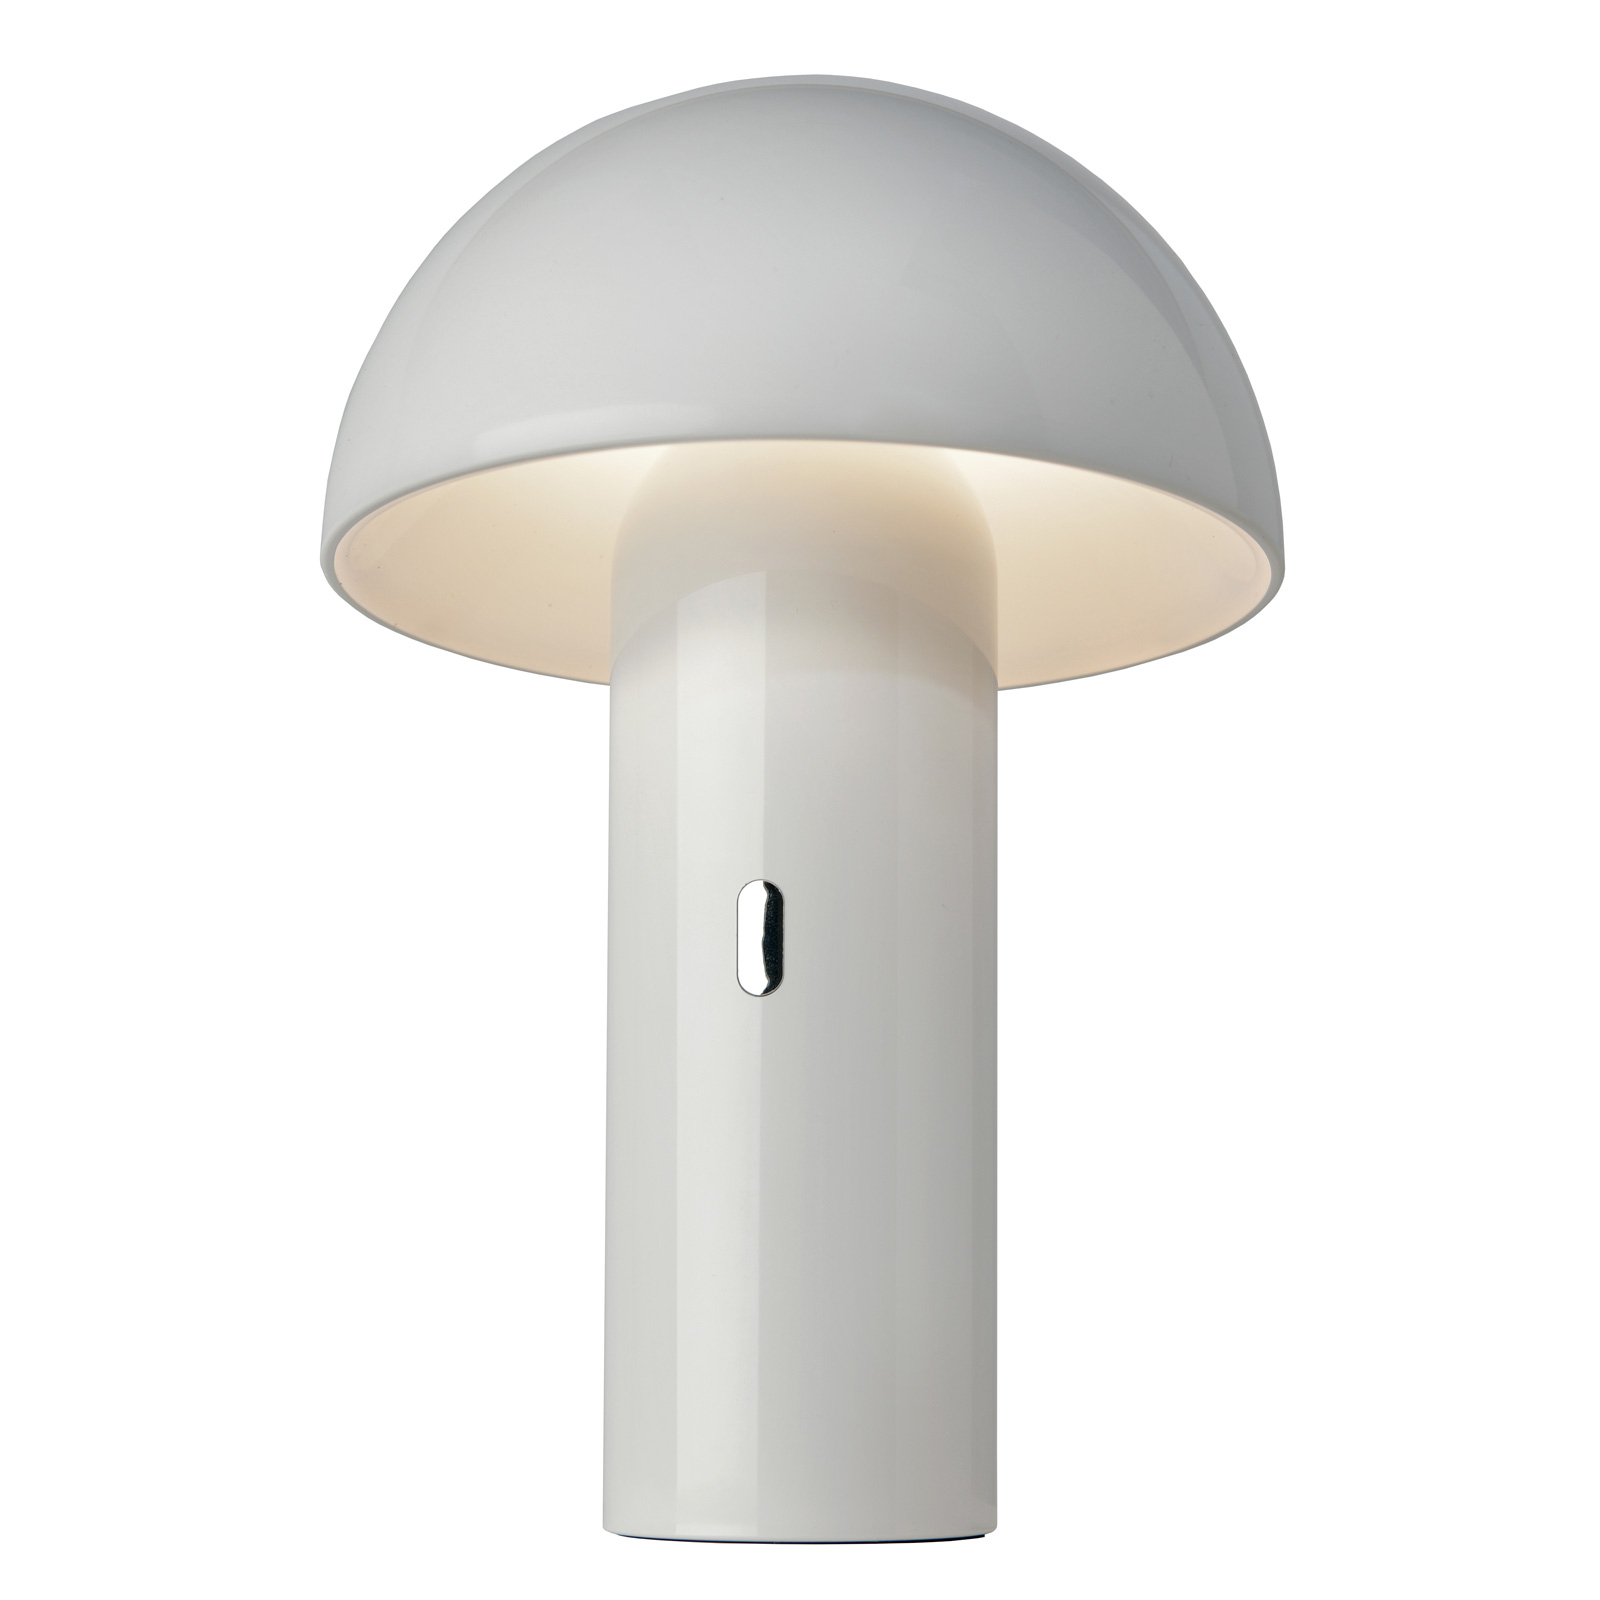 Lampe table LED Svamp batterie, pivotante, blanche